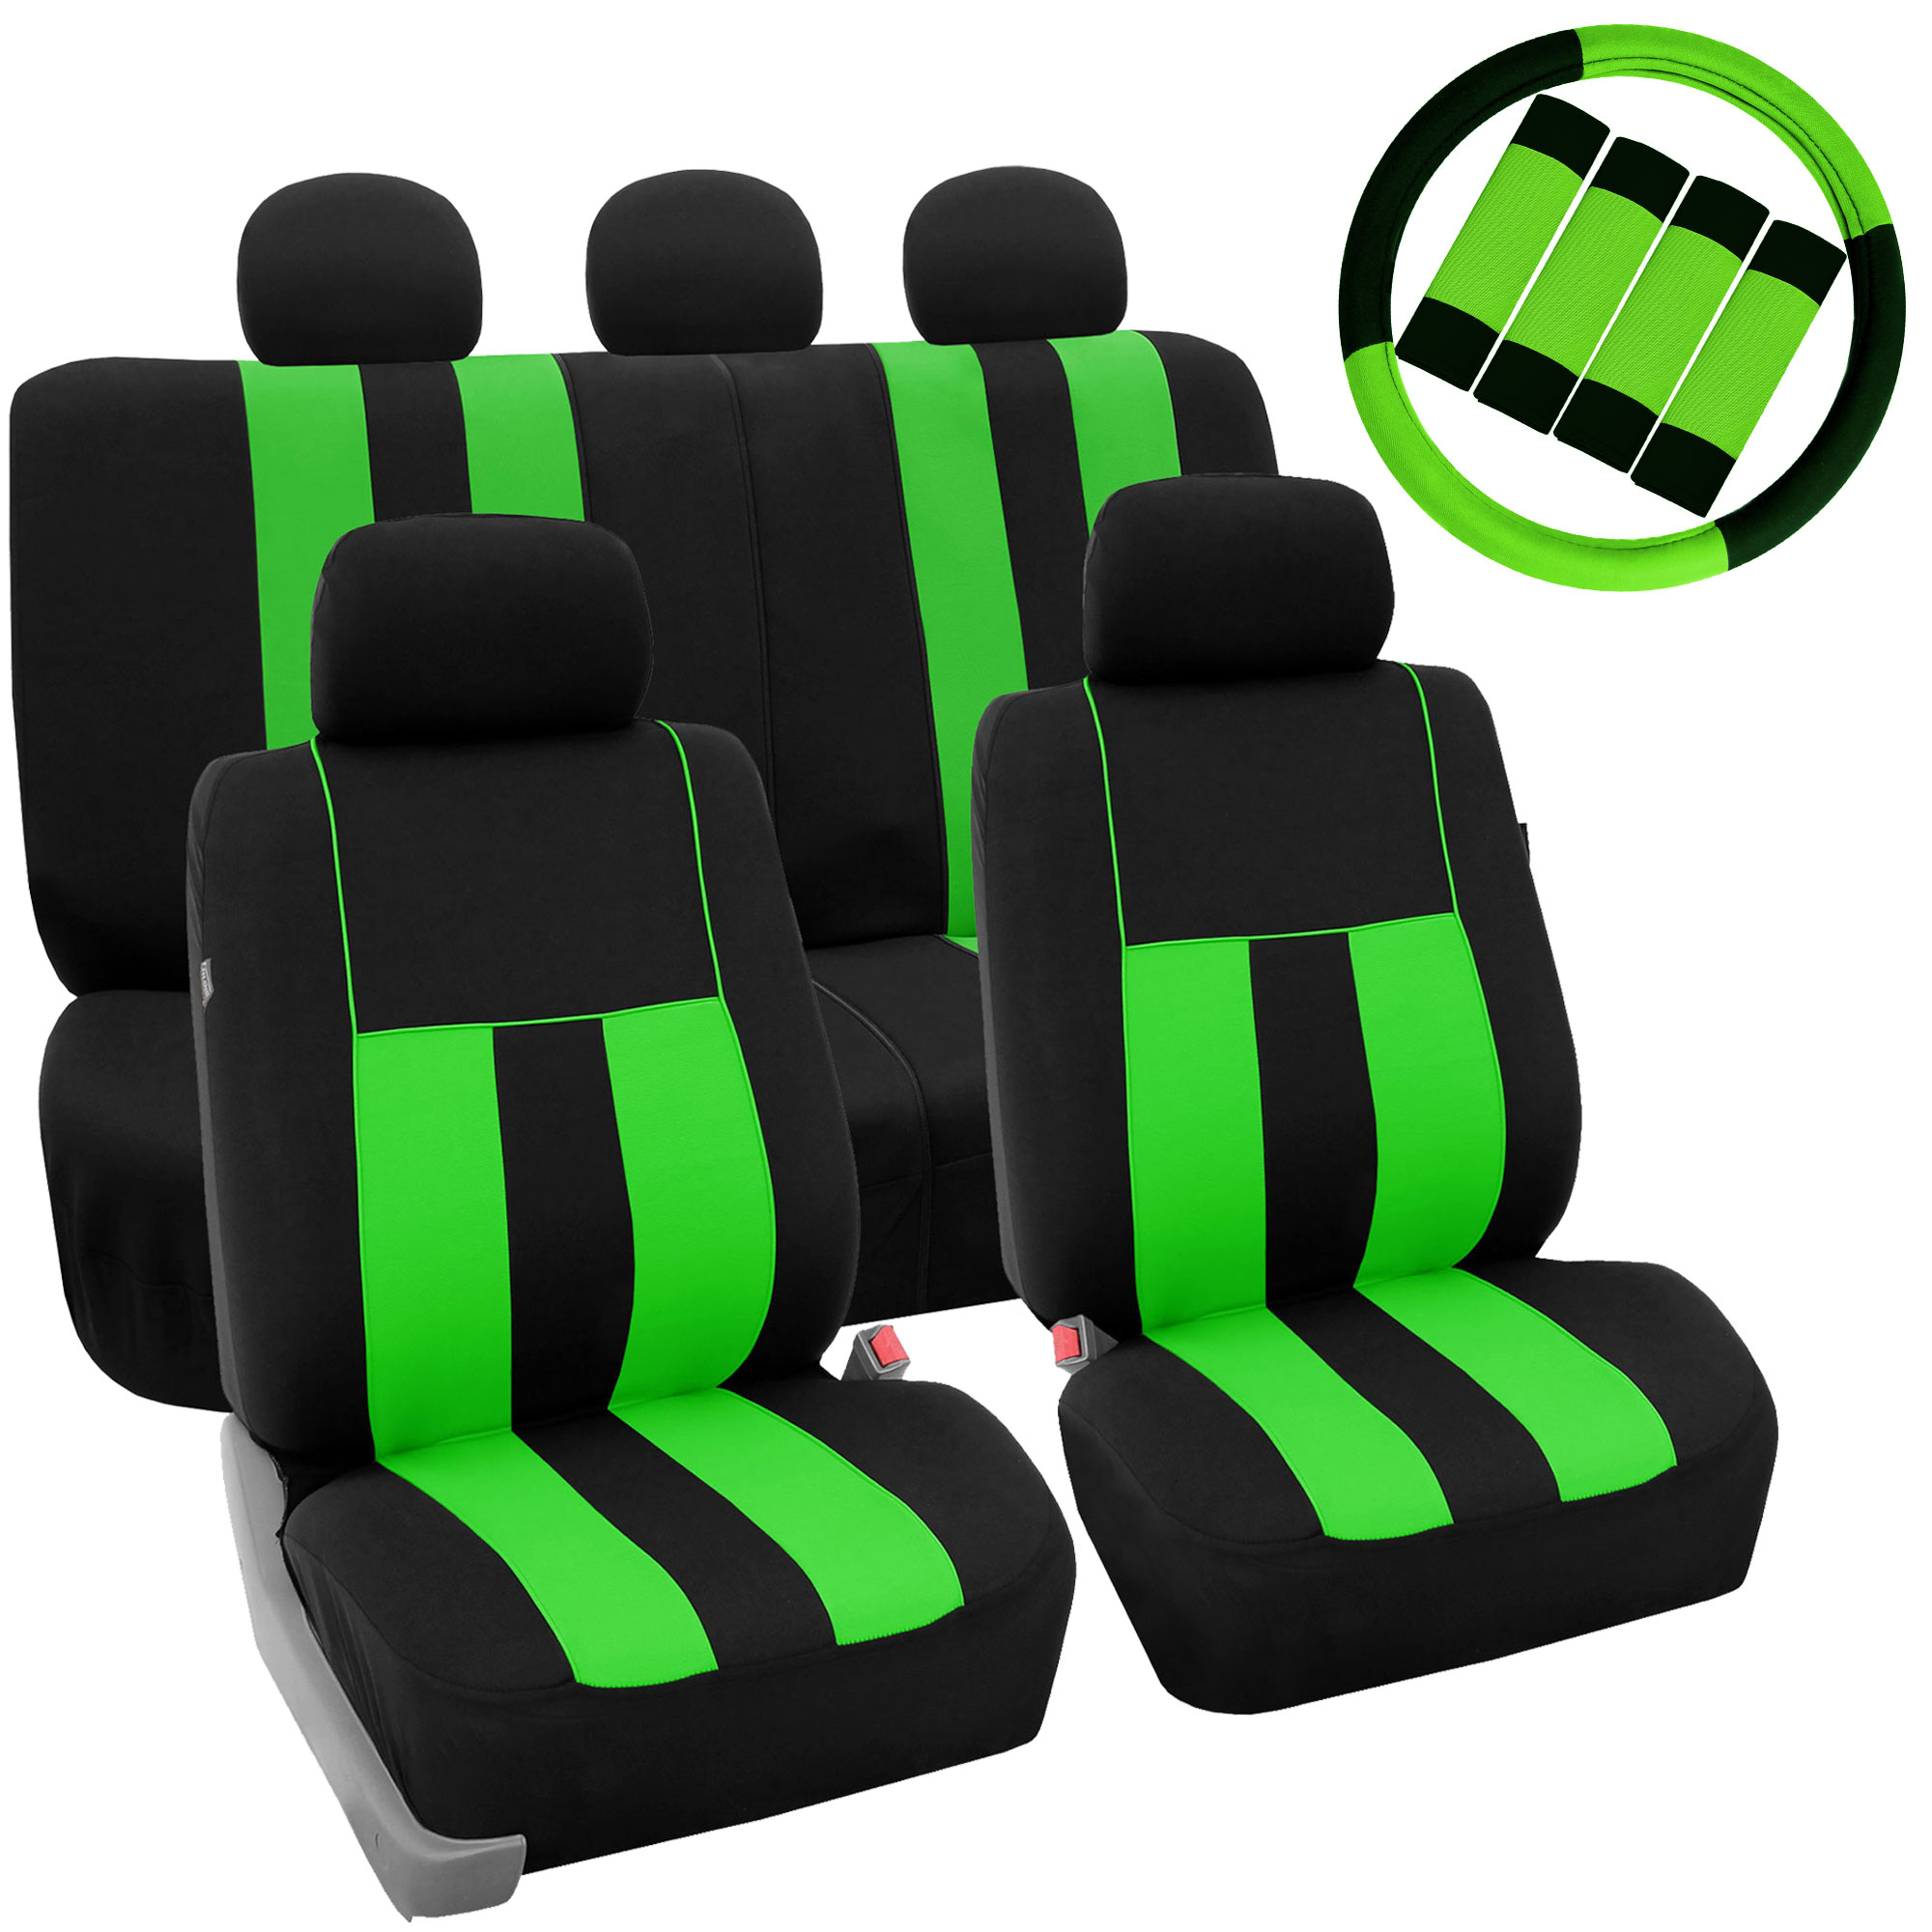 FH Group Car Seat Covers Striking Striped for Sedan, SUV, Van, Full Set w/ Steering Cover & Belt Pads, Green Black